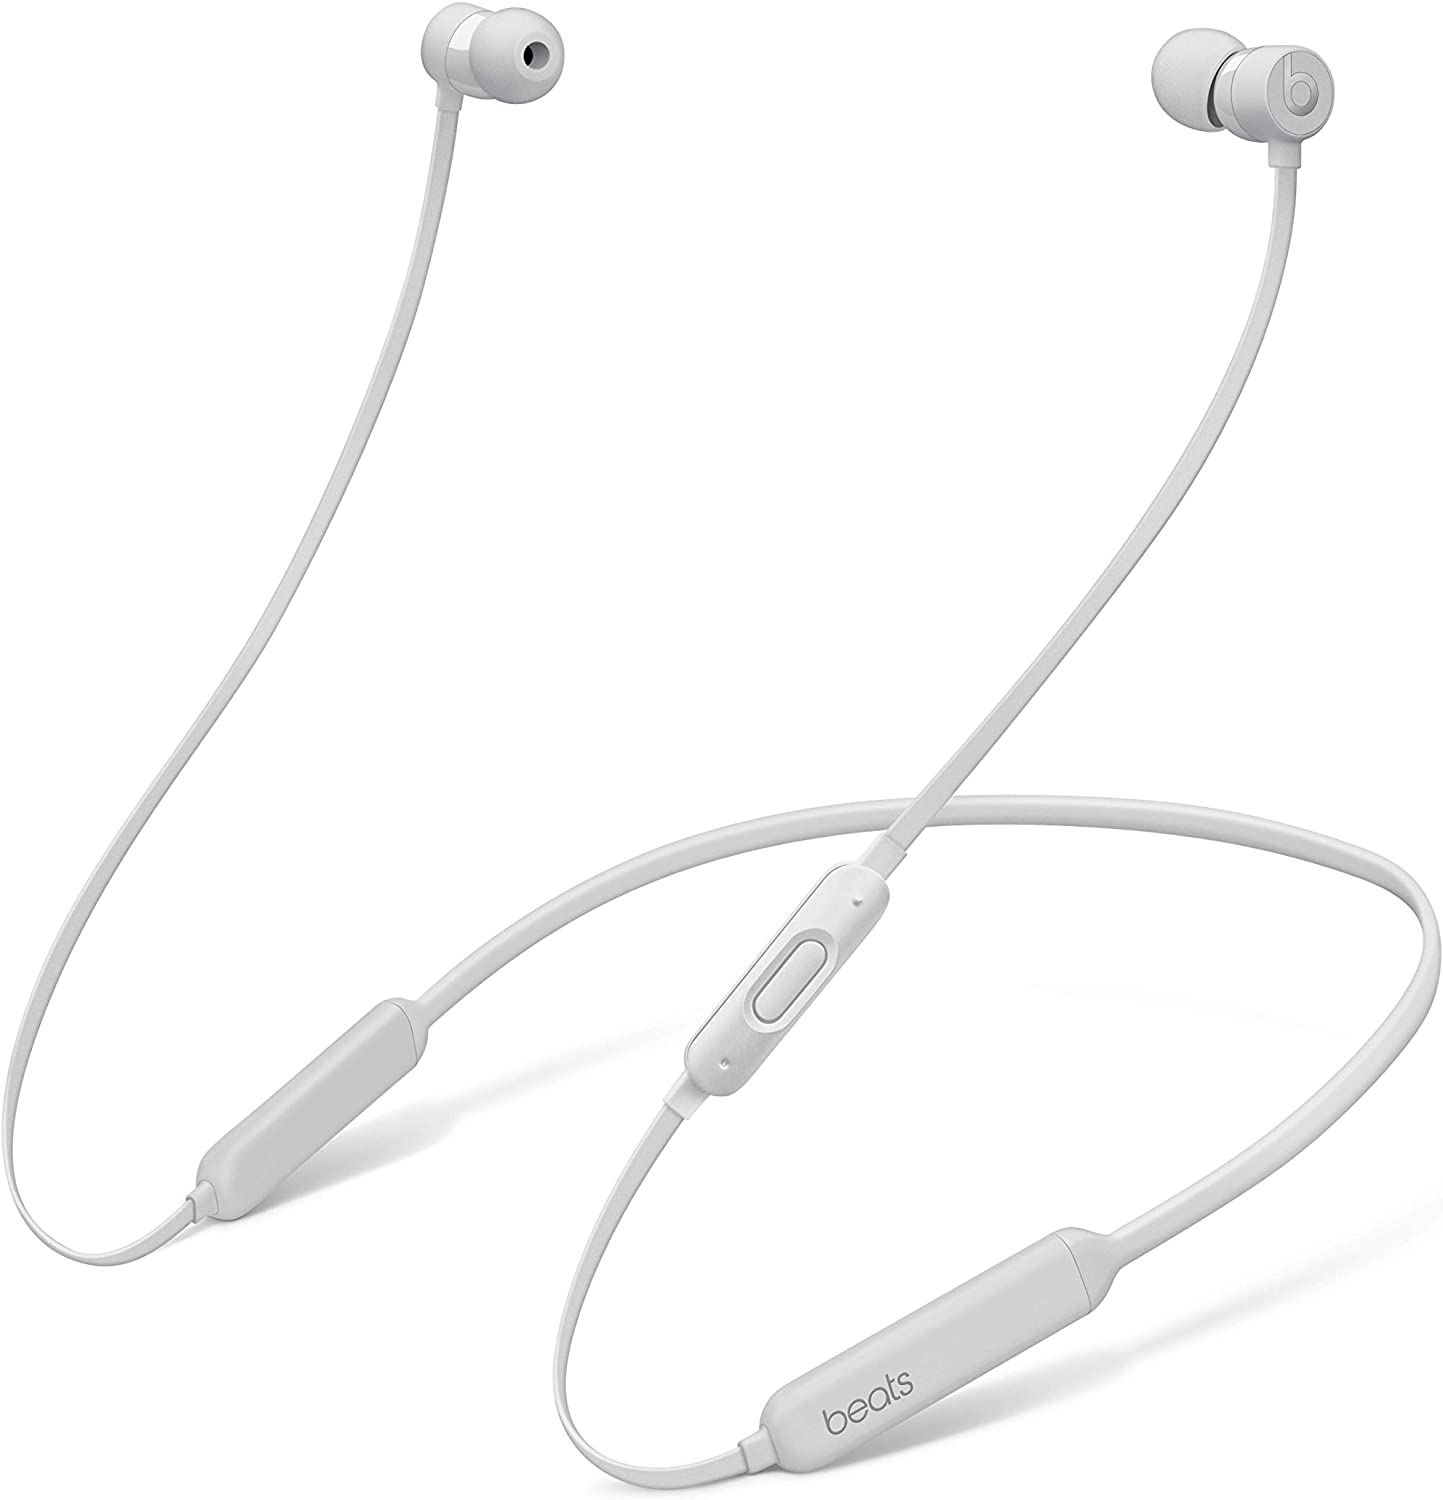 BeatsX Wireless Earphones - Apple W1 Headphone Chip, Class 1 Bluetooth, 8 Hours Of Listening Time - Satin Silver